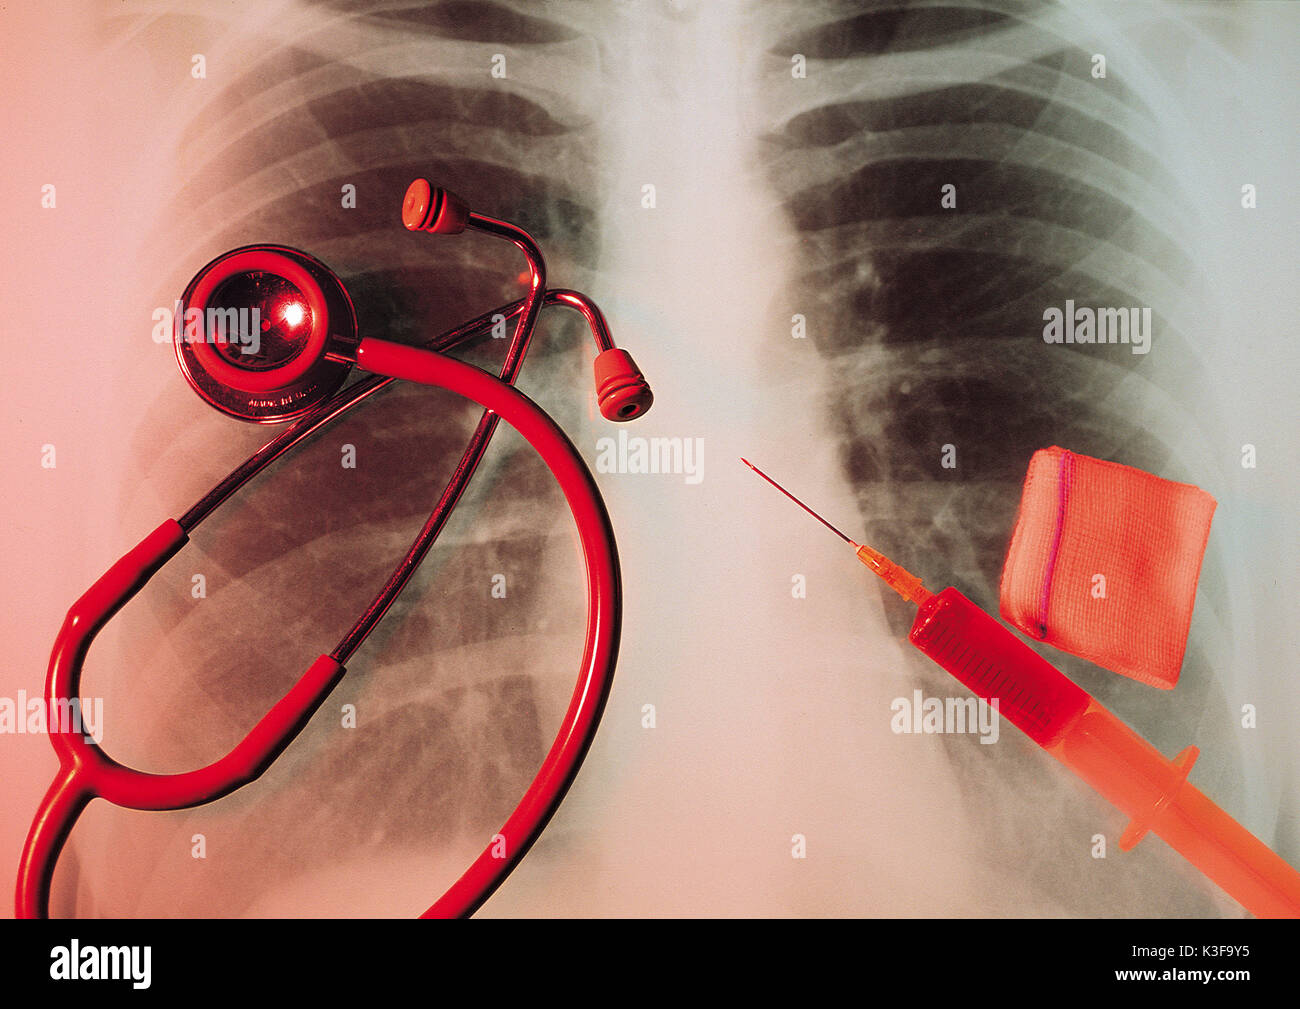 radiograph close doctor's instruments - Stock Image